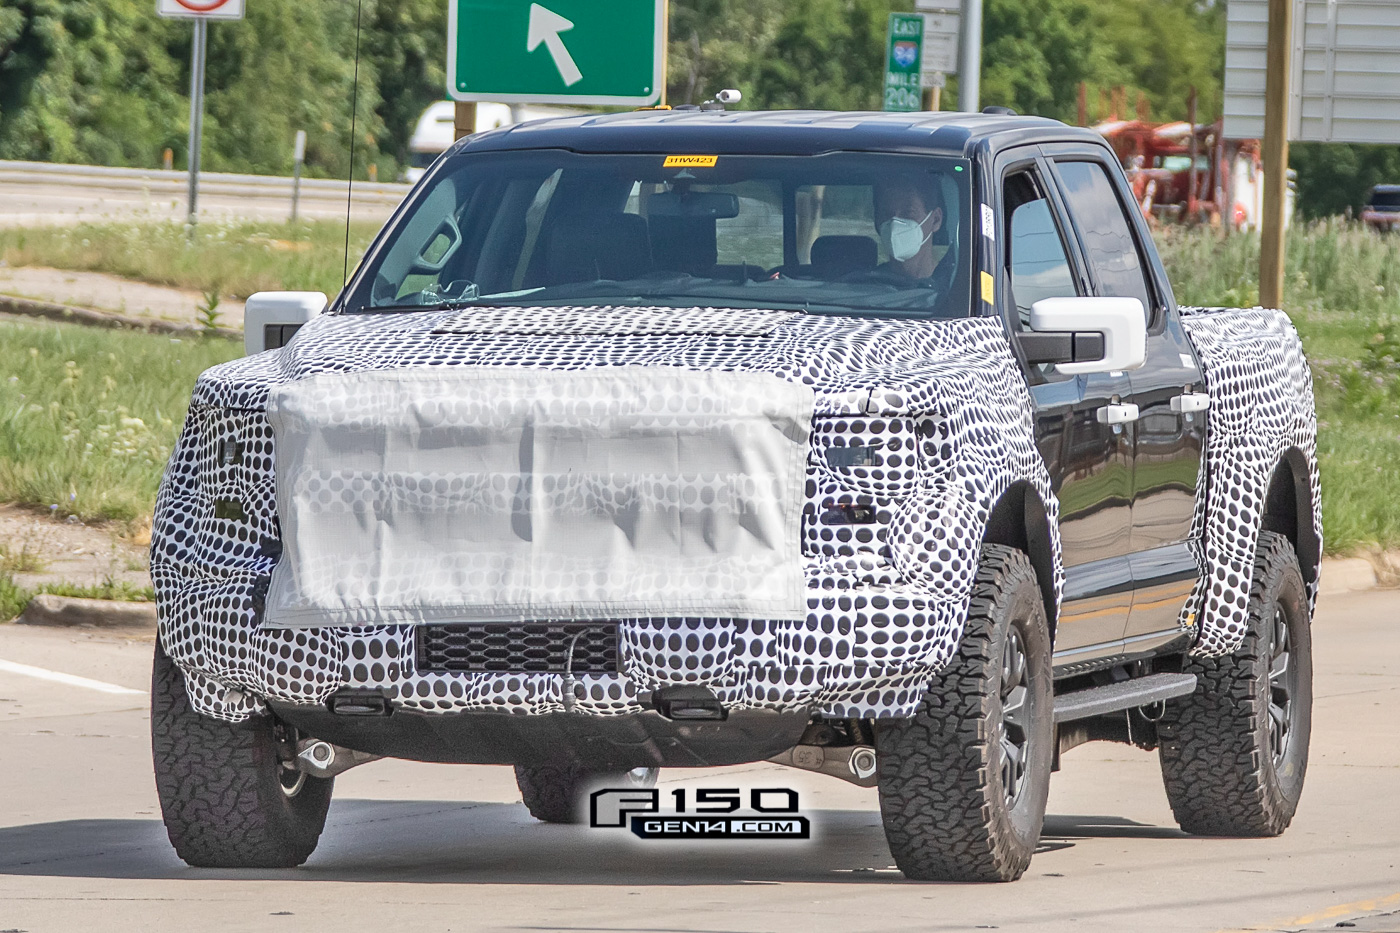 2021-F-150-Raptor-Prototype-Suspension-Spied-5.jpg